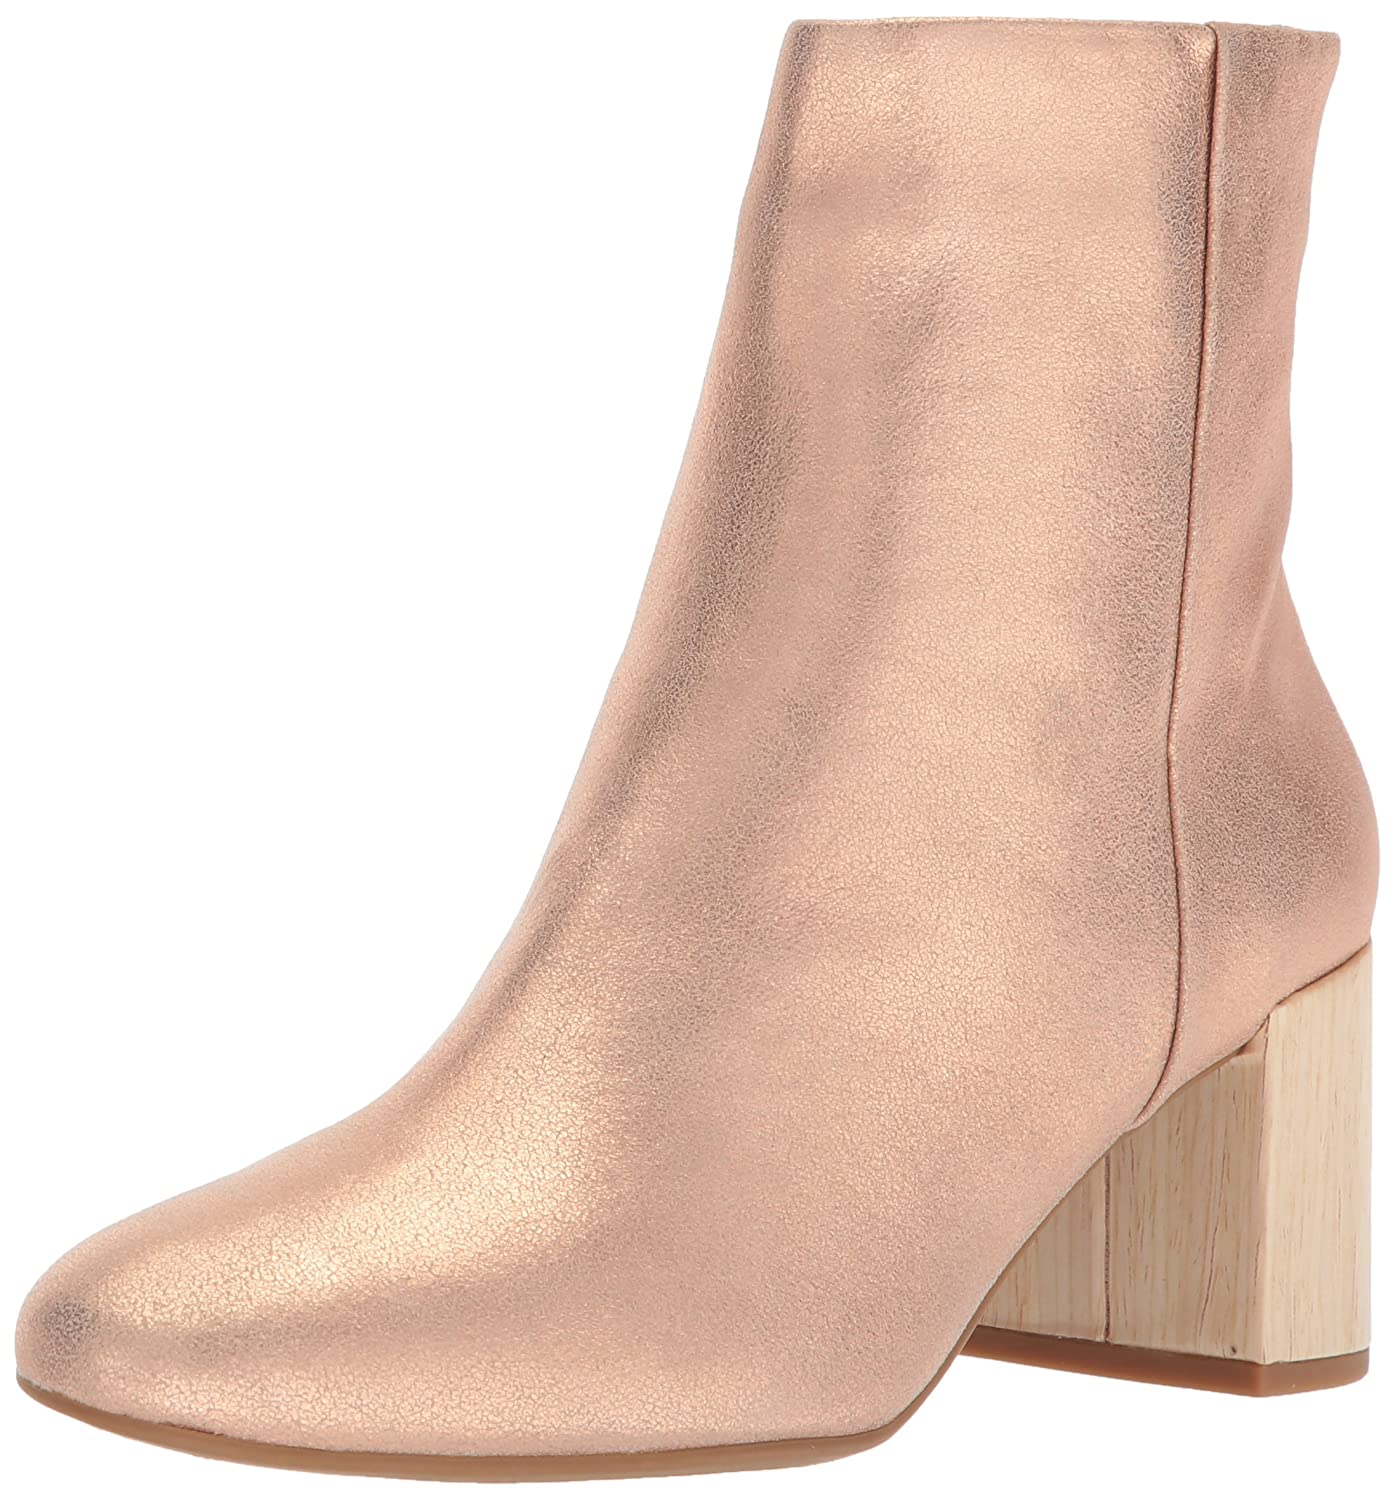 Taryn Rose Women's Cassidy Powder Metallic Ankle Boot B074B5F6HV 11 M M US|Open Pink